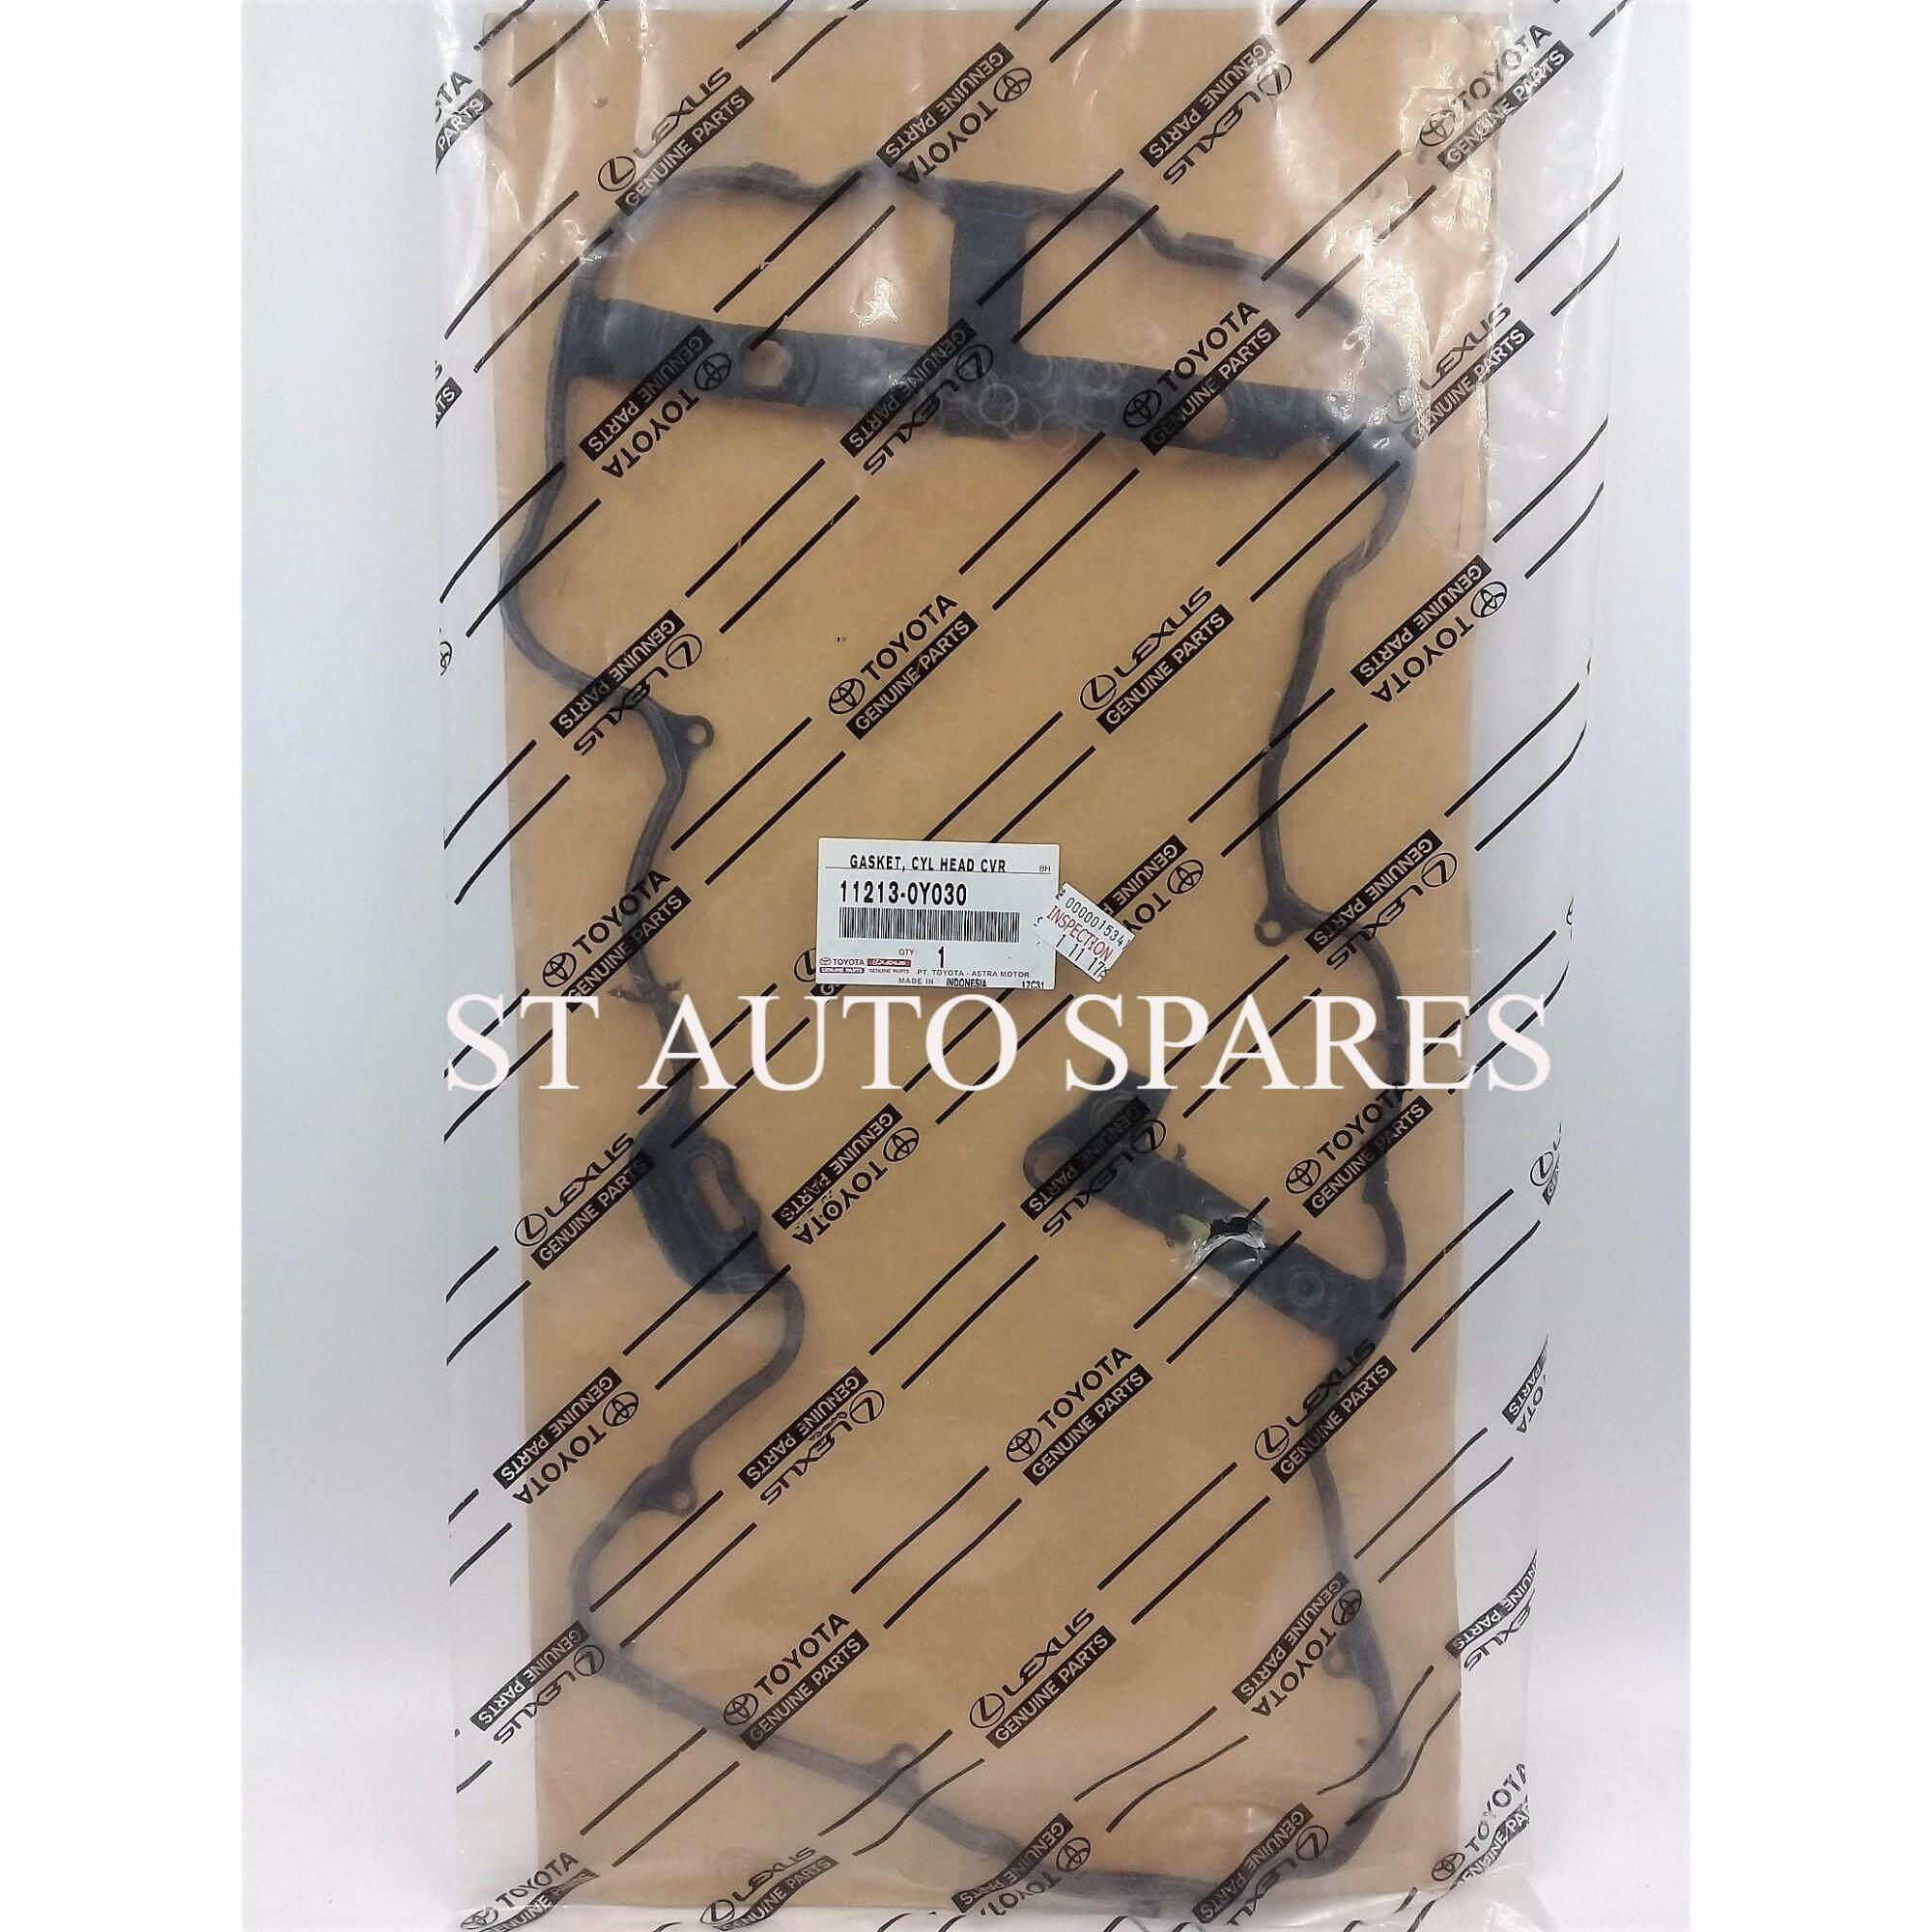 Toyota Auto Parts Spares Price In Malaysia Best Top 06 Transmission 07 Tub 08 Wiring Information Par Valve Cover Gasket 11213 0y030 Vios Avanza Rush Nsp150 Nsp151 F653 F654 F800